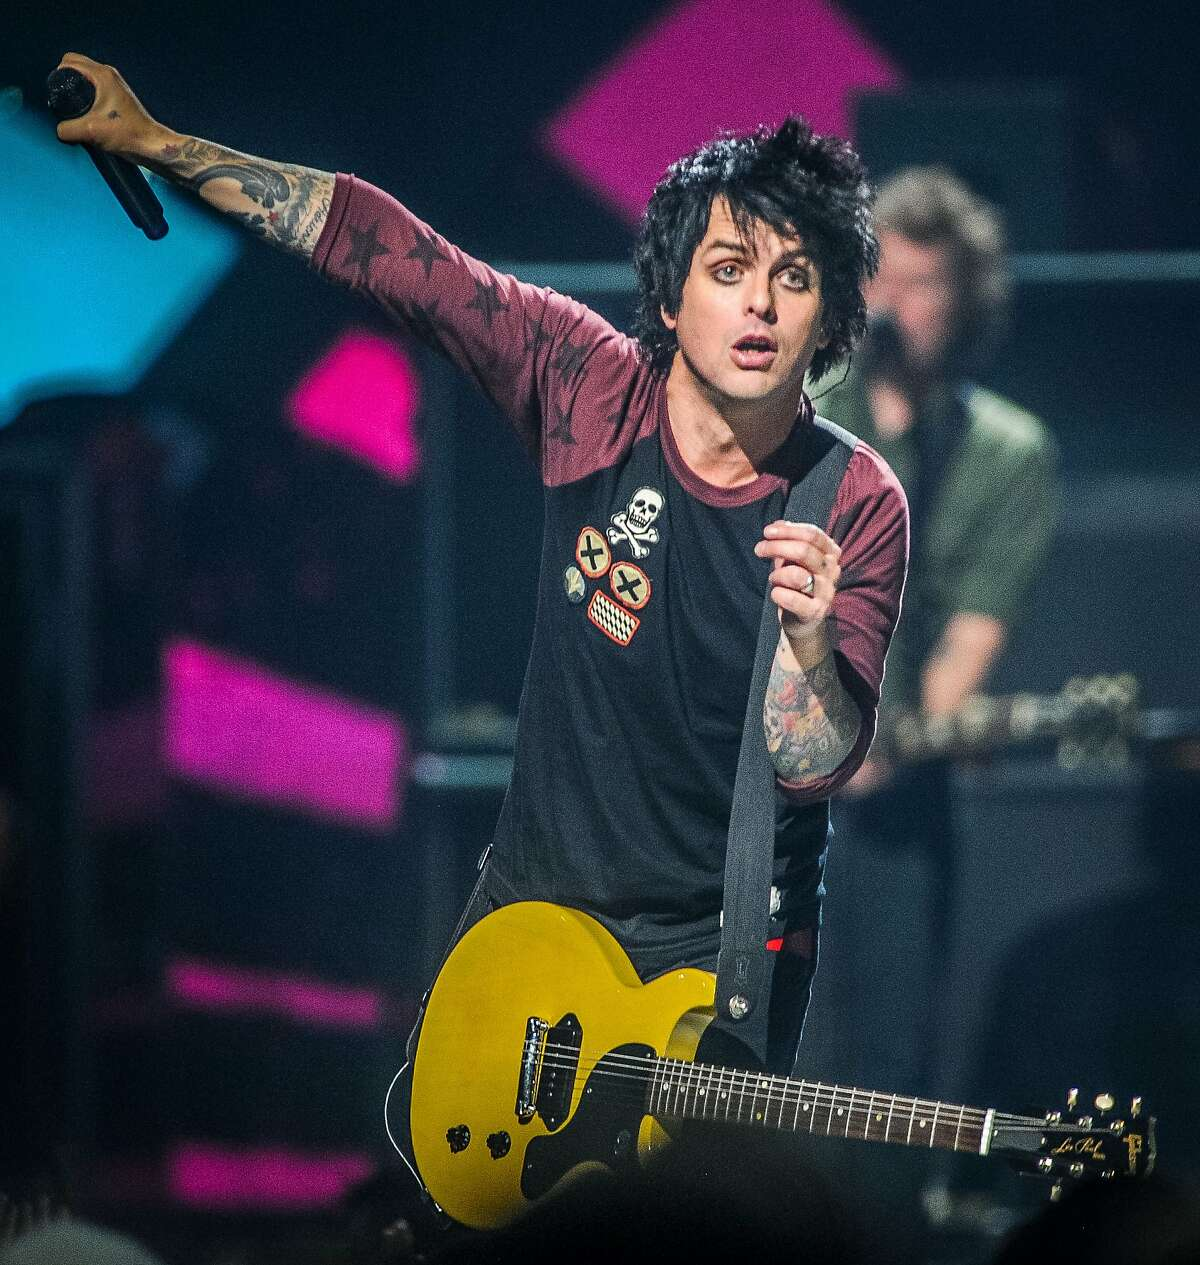 FILE - This Sept. 21, 2012 file photo shows Billie Joe Armstrong of Green Day on stage at the iHeart Radio Music Festival at the MGM Grand Arena in Las Vegas. Sting, Green Day, and Bill Withers are among the first-time nominees for the Rock and Roll Hall of Fame. (Photo by Eric Reed/Invision/AP, file)